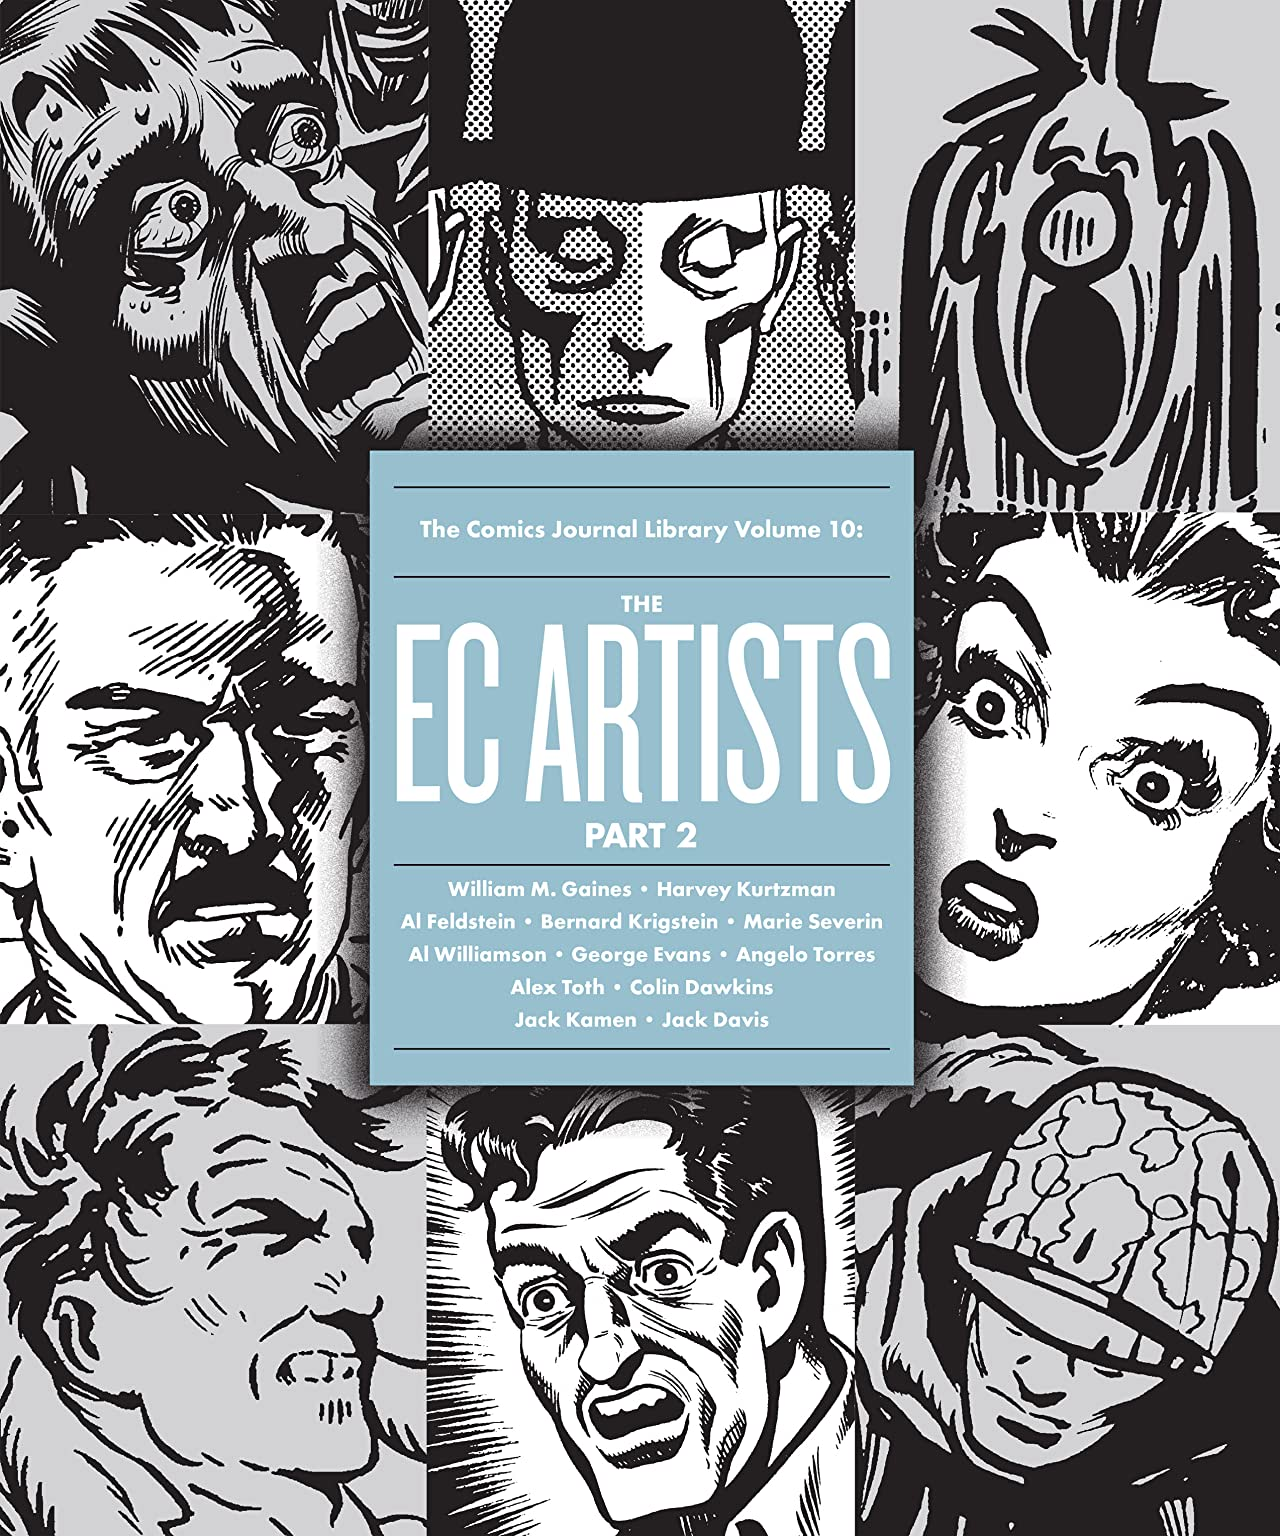 The Comics Journal Library Vol. 10: The EC Artists Part 2